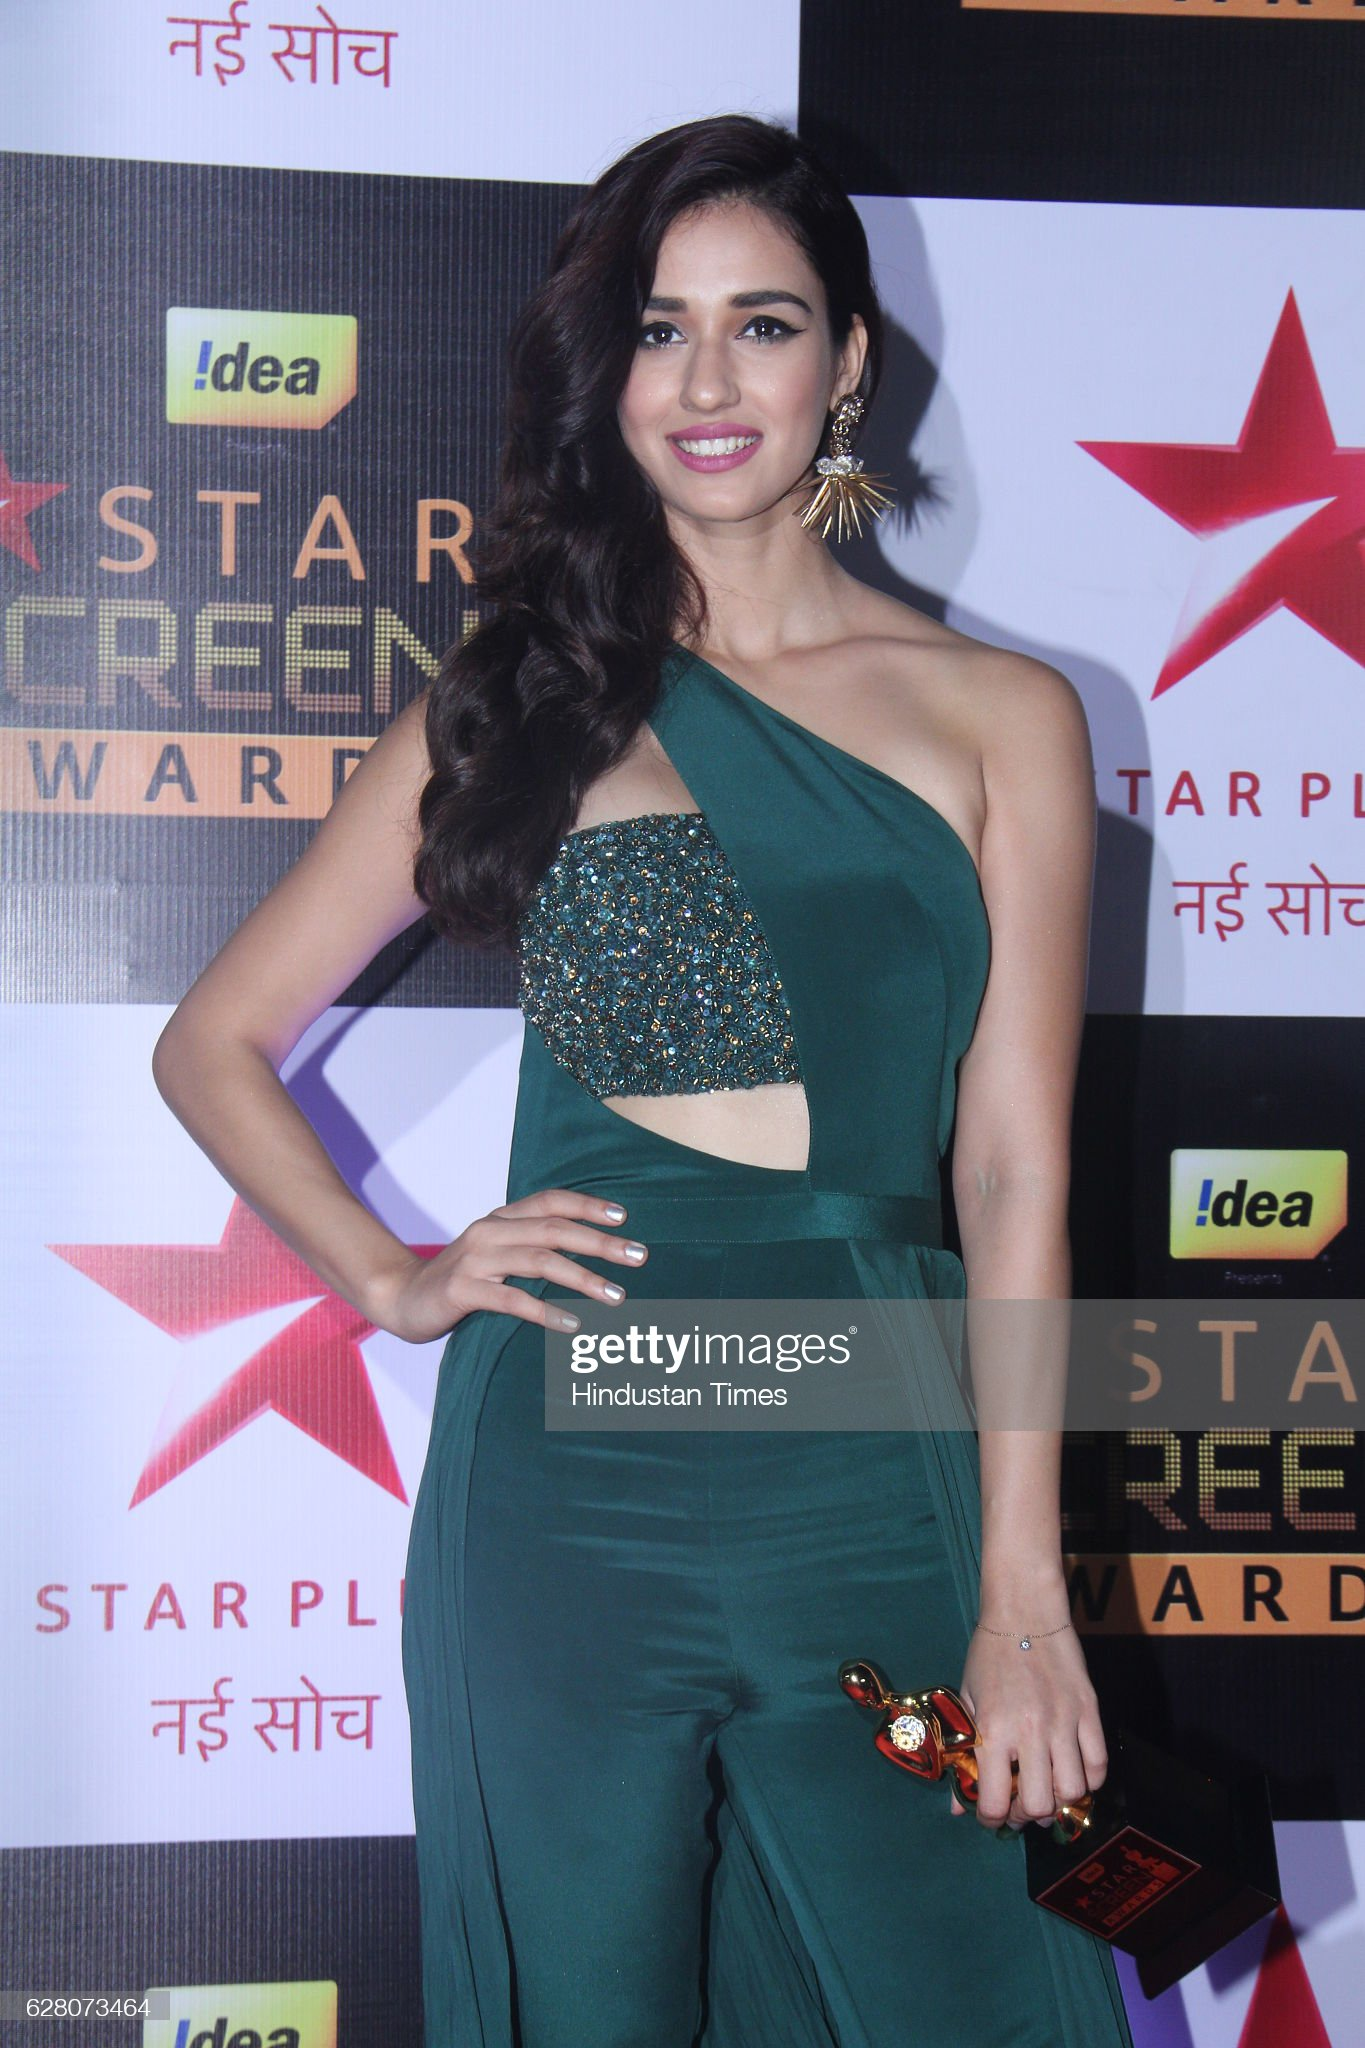 bollywood-actor-disha-patani-during-the-23rd-annual-star-screen-2016-picture-id628073464